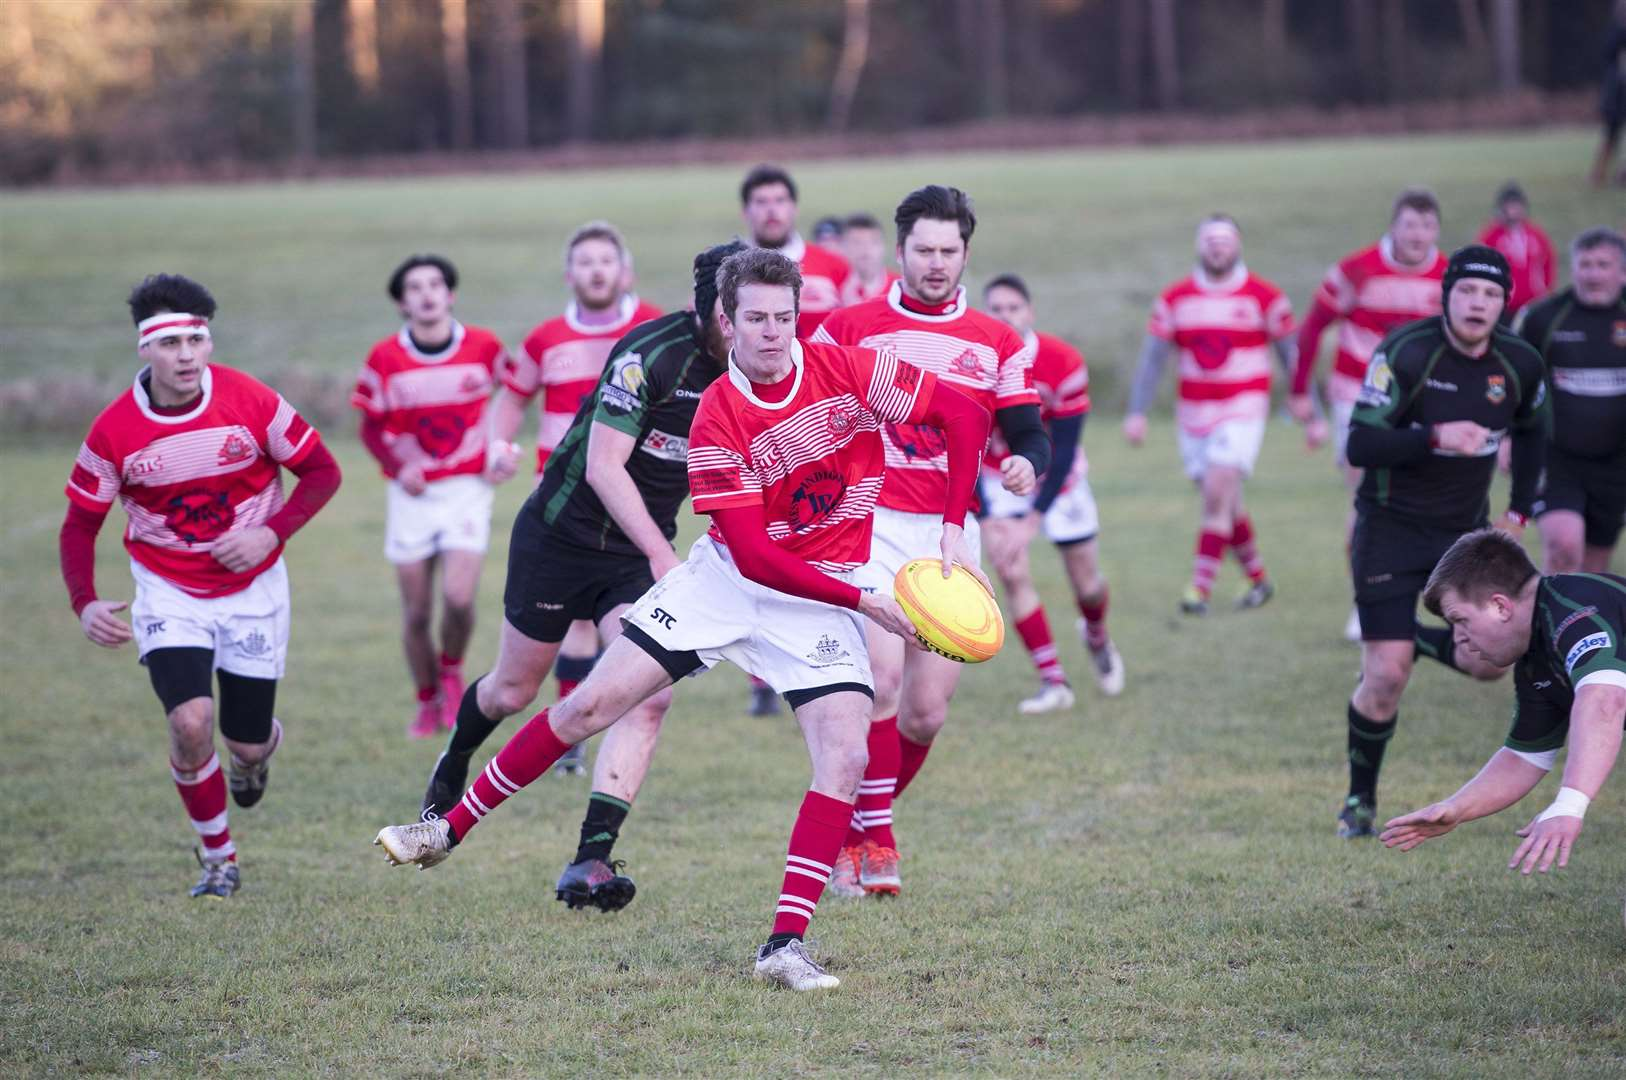 Thetford Rugby Club v Newmarket Rugby Club ..Harry Stenton passing for Thetford..Picture Mark Westley. (35525606)